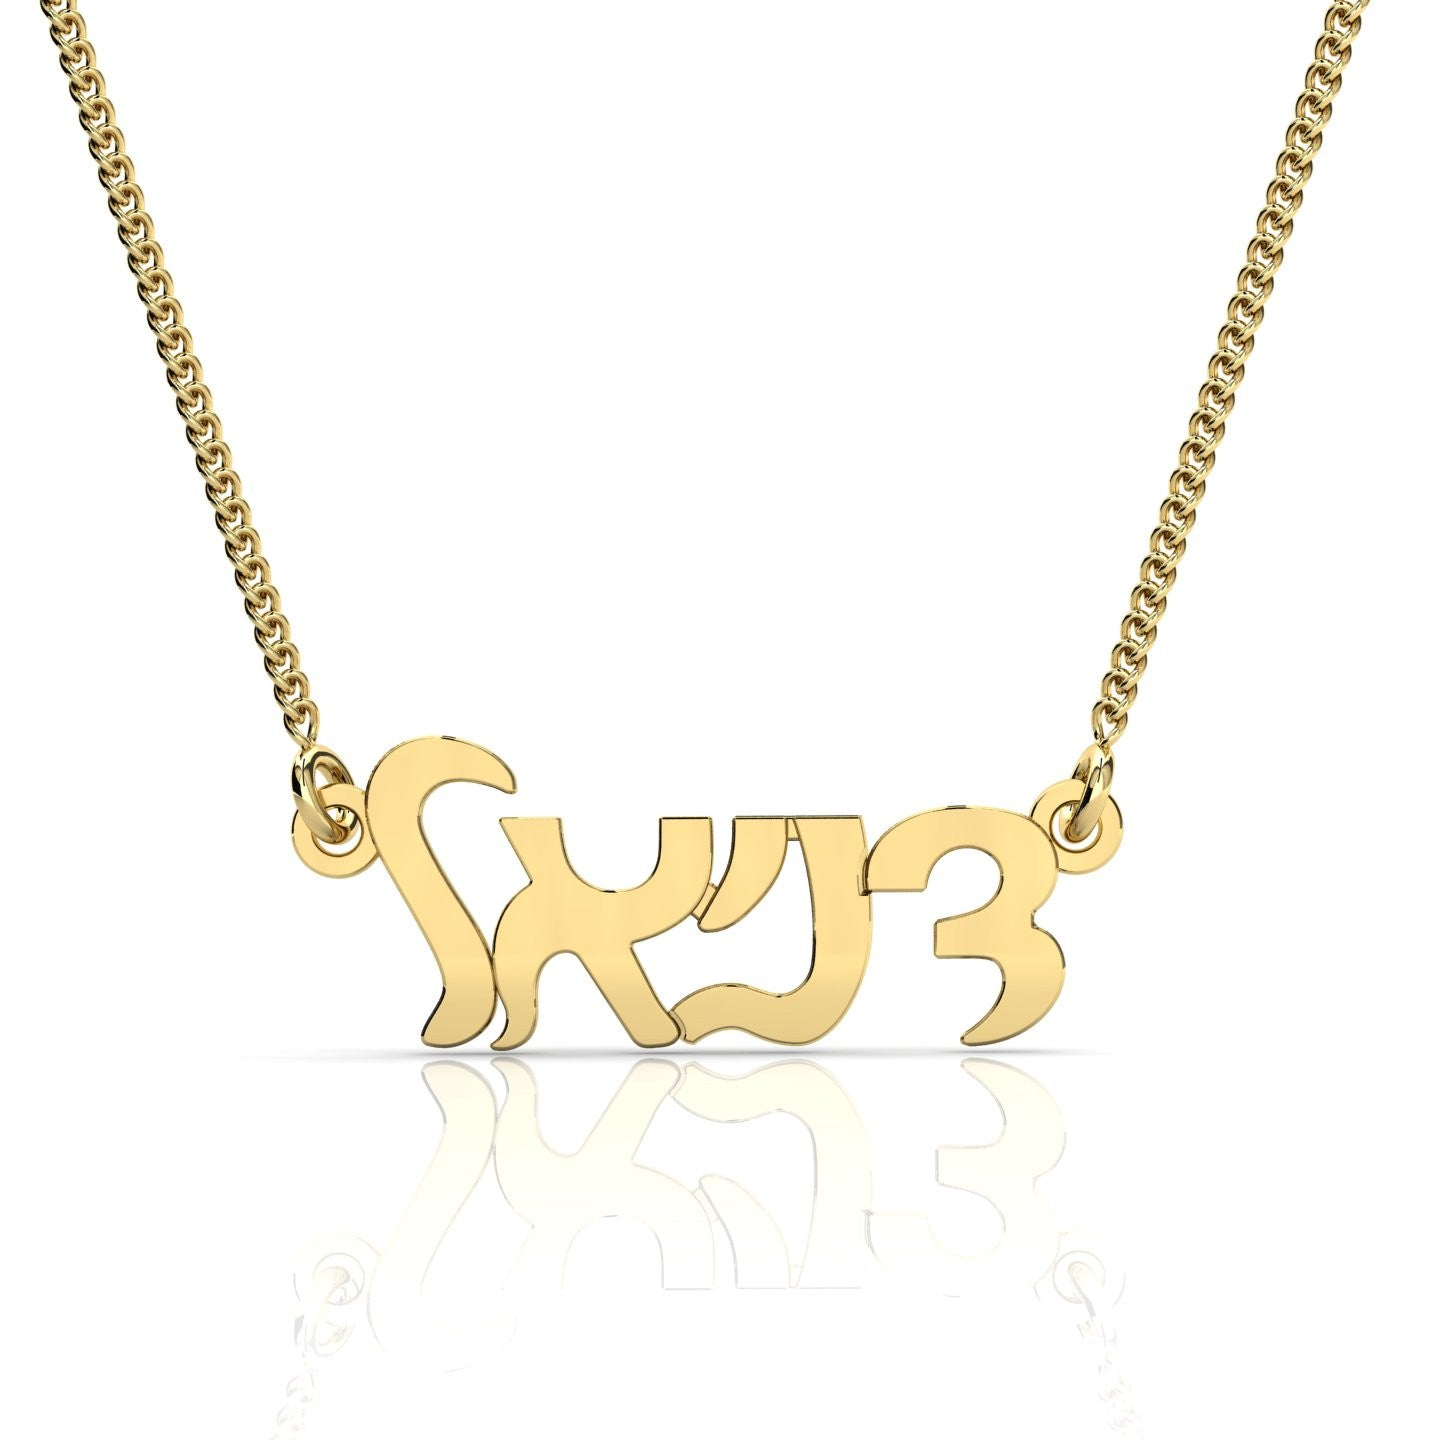 file store powered necklace trust in we original storenvy jewellery by online products double name gold